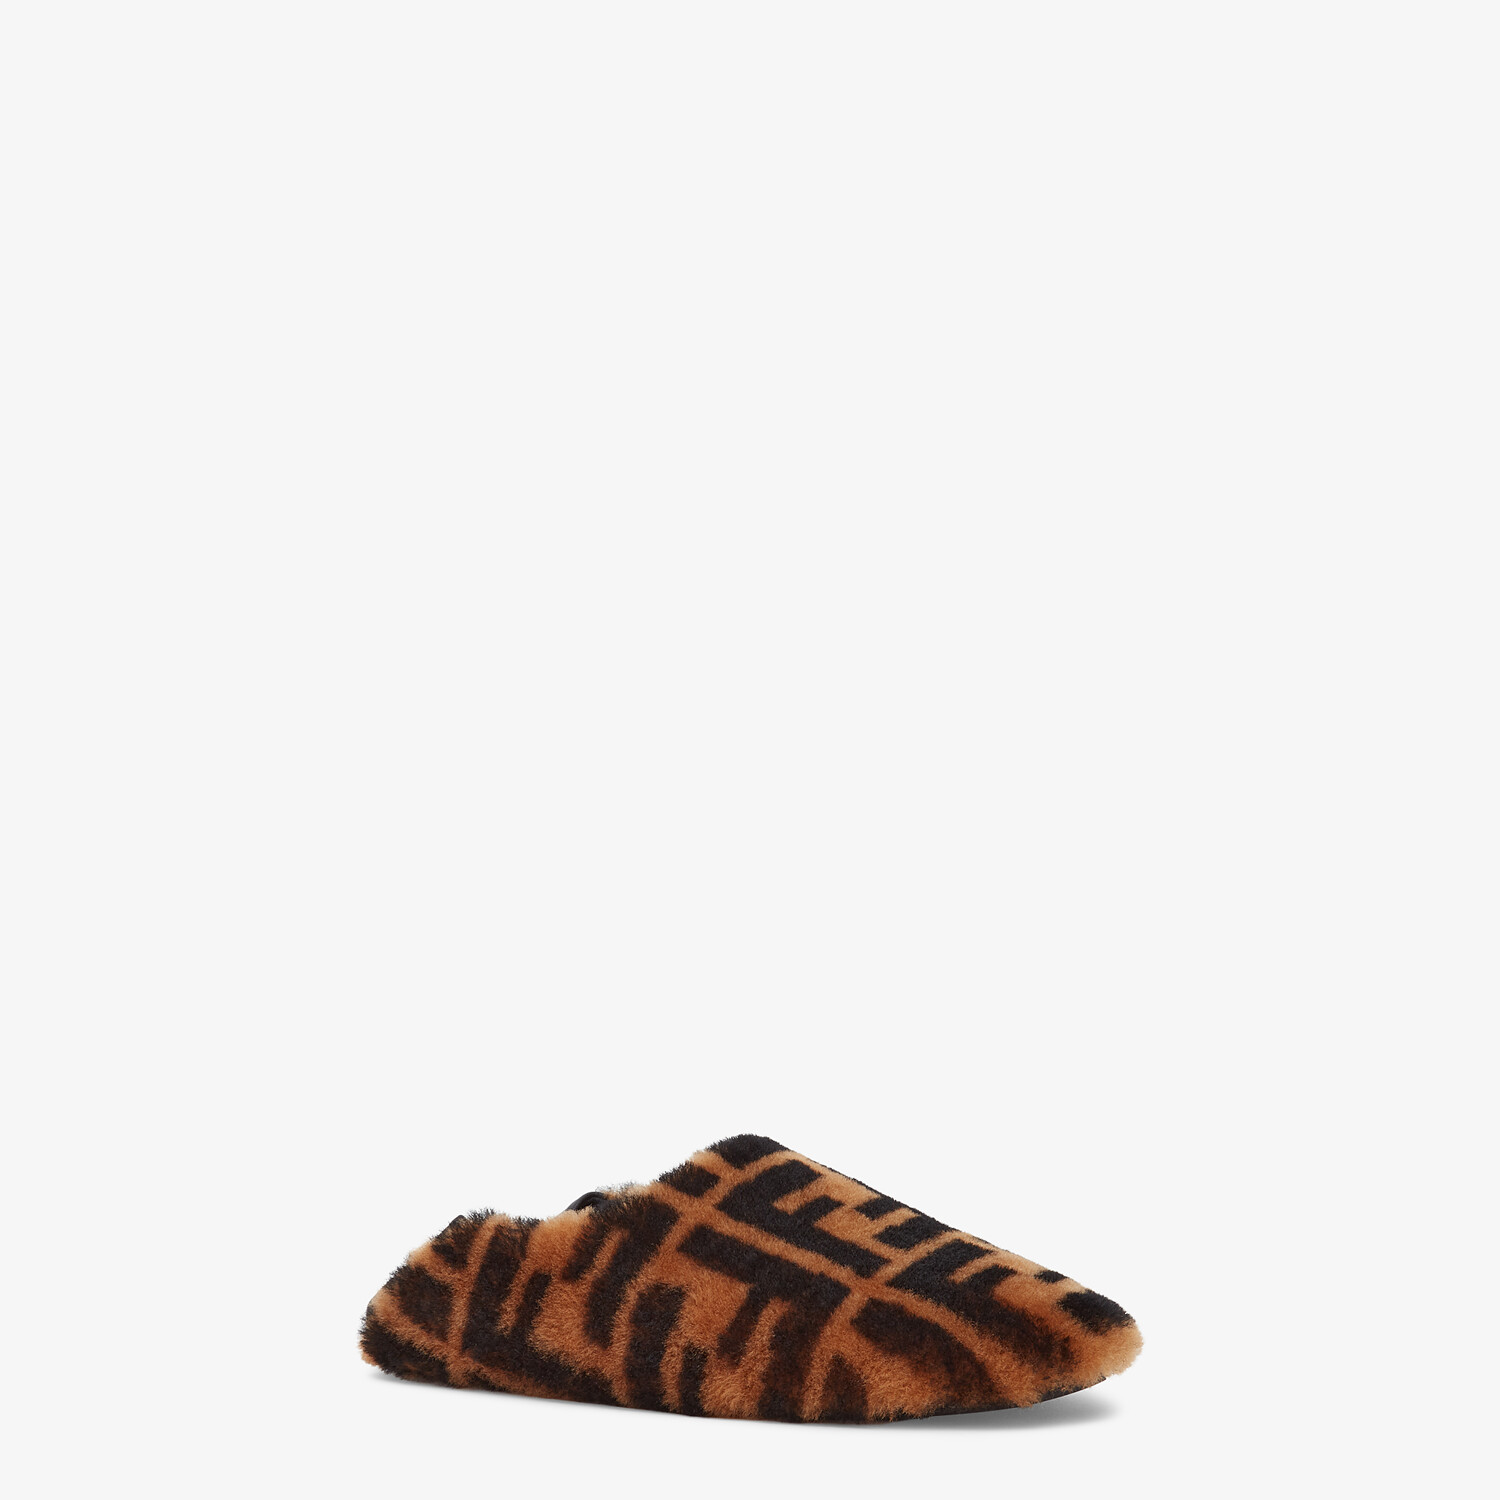 FENDI SLIPPERS - Brown sheepskin slippers - view 2 detail